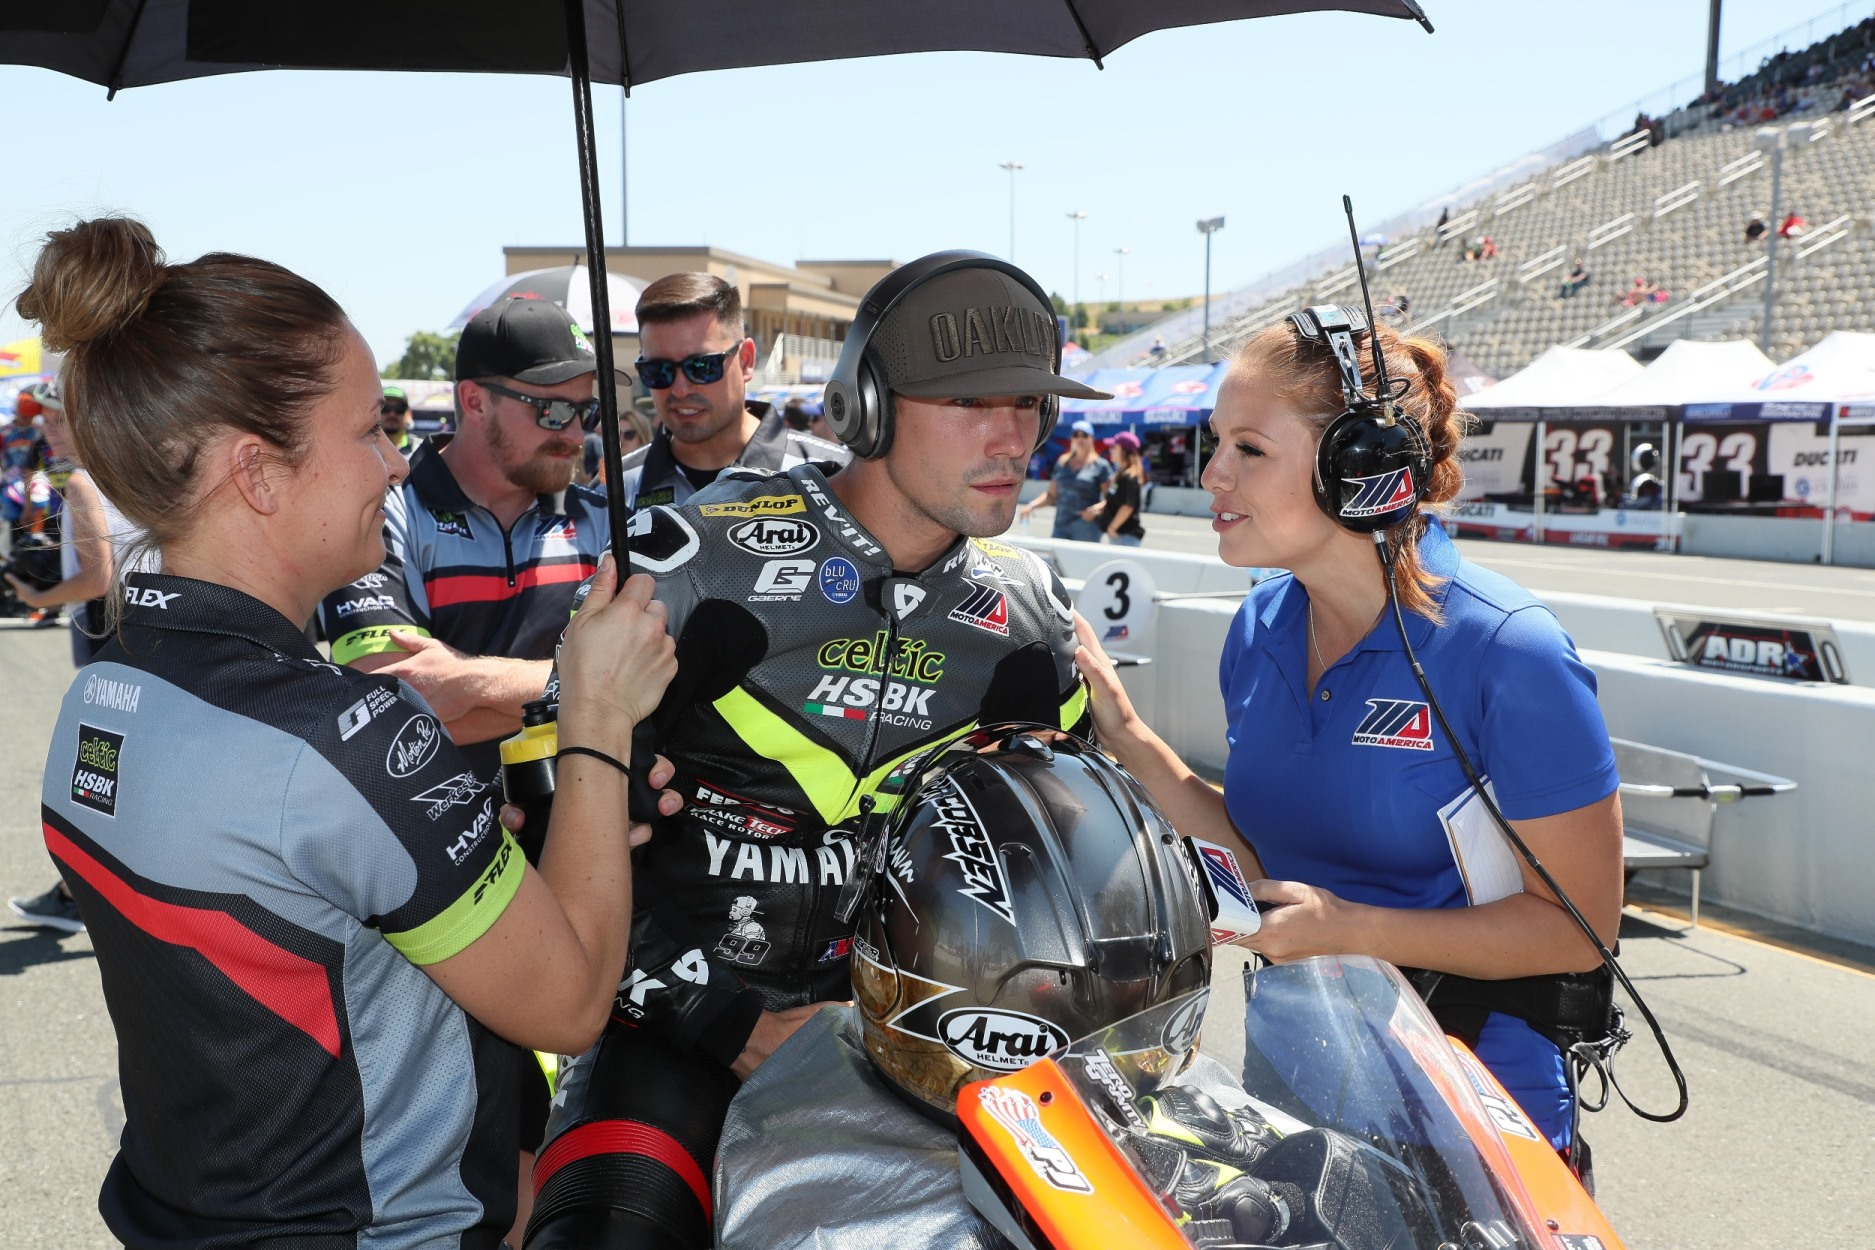 CELTIC HSBK RACING BACK ON TOP AT SONOMA RACEWAY